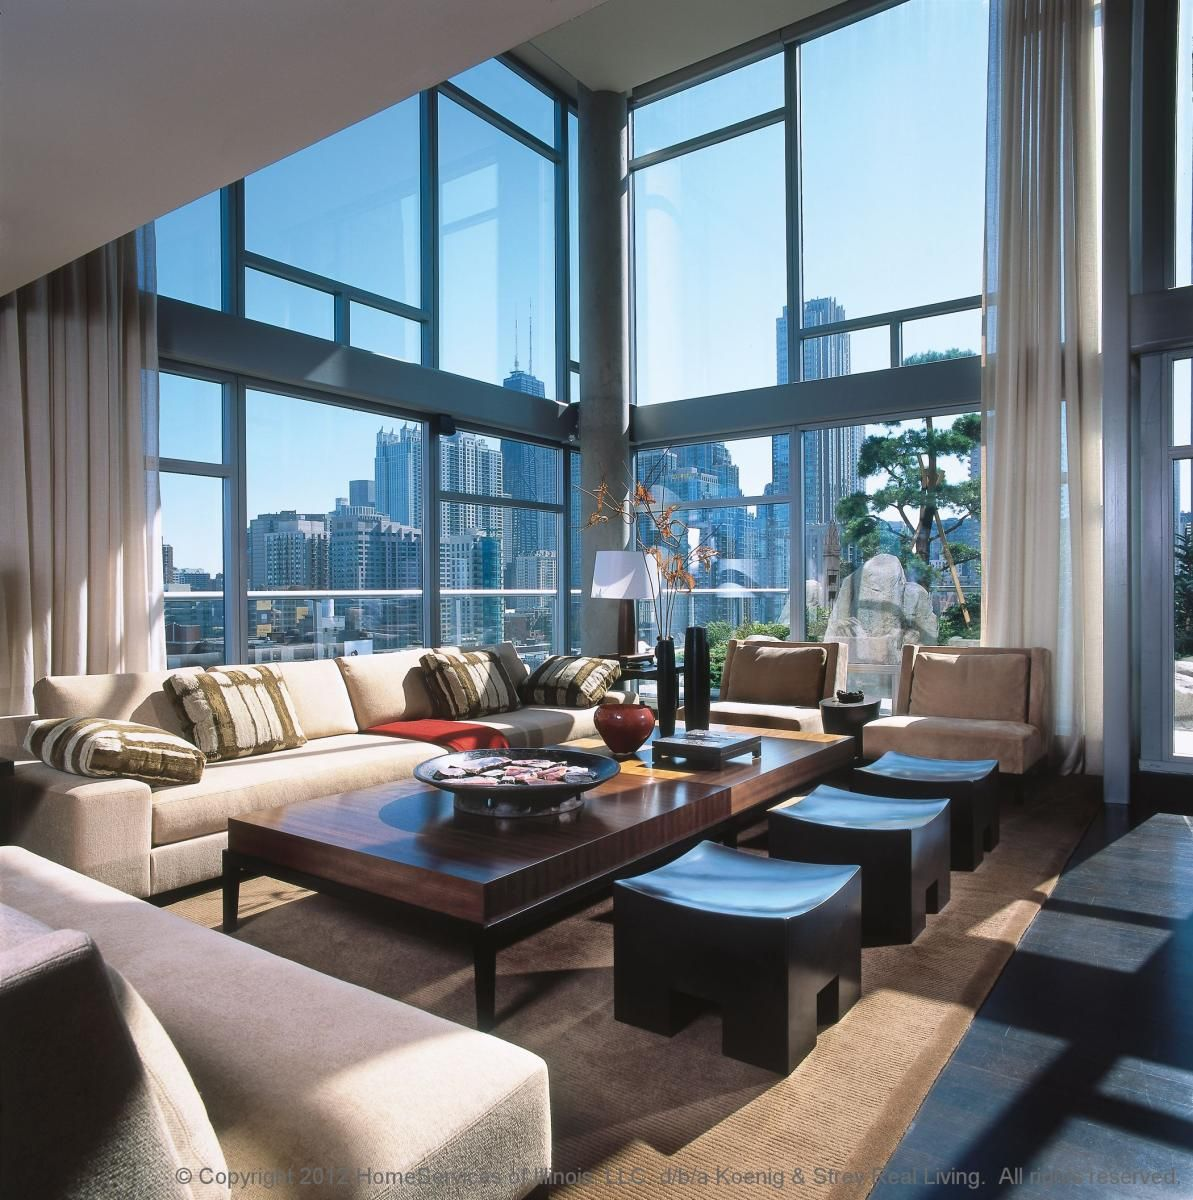 The sleek and sophisticated coppin penthouse overlooking melbourne - Appartement duplex winder gibson architecte ...